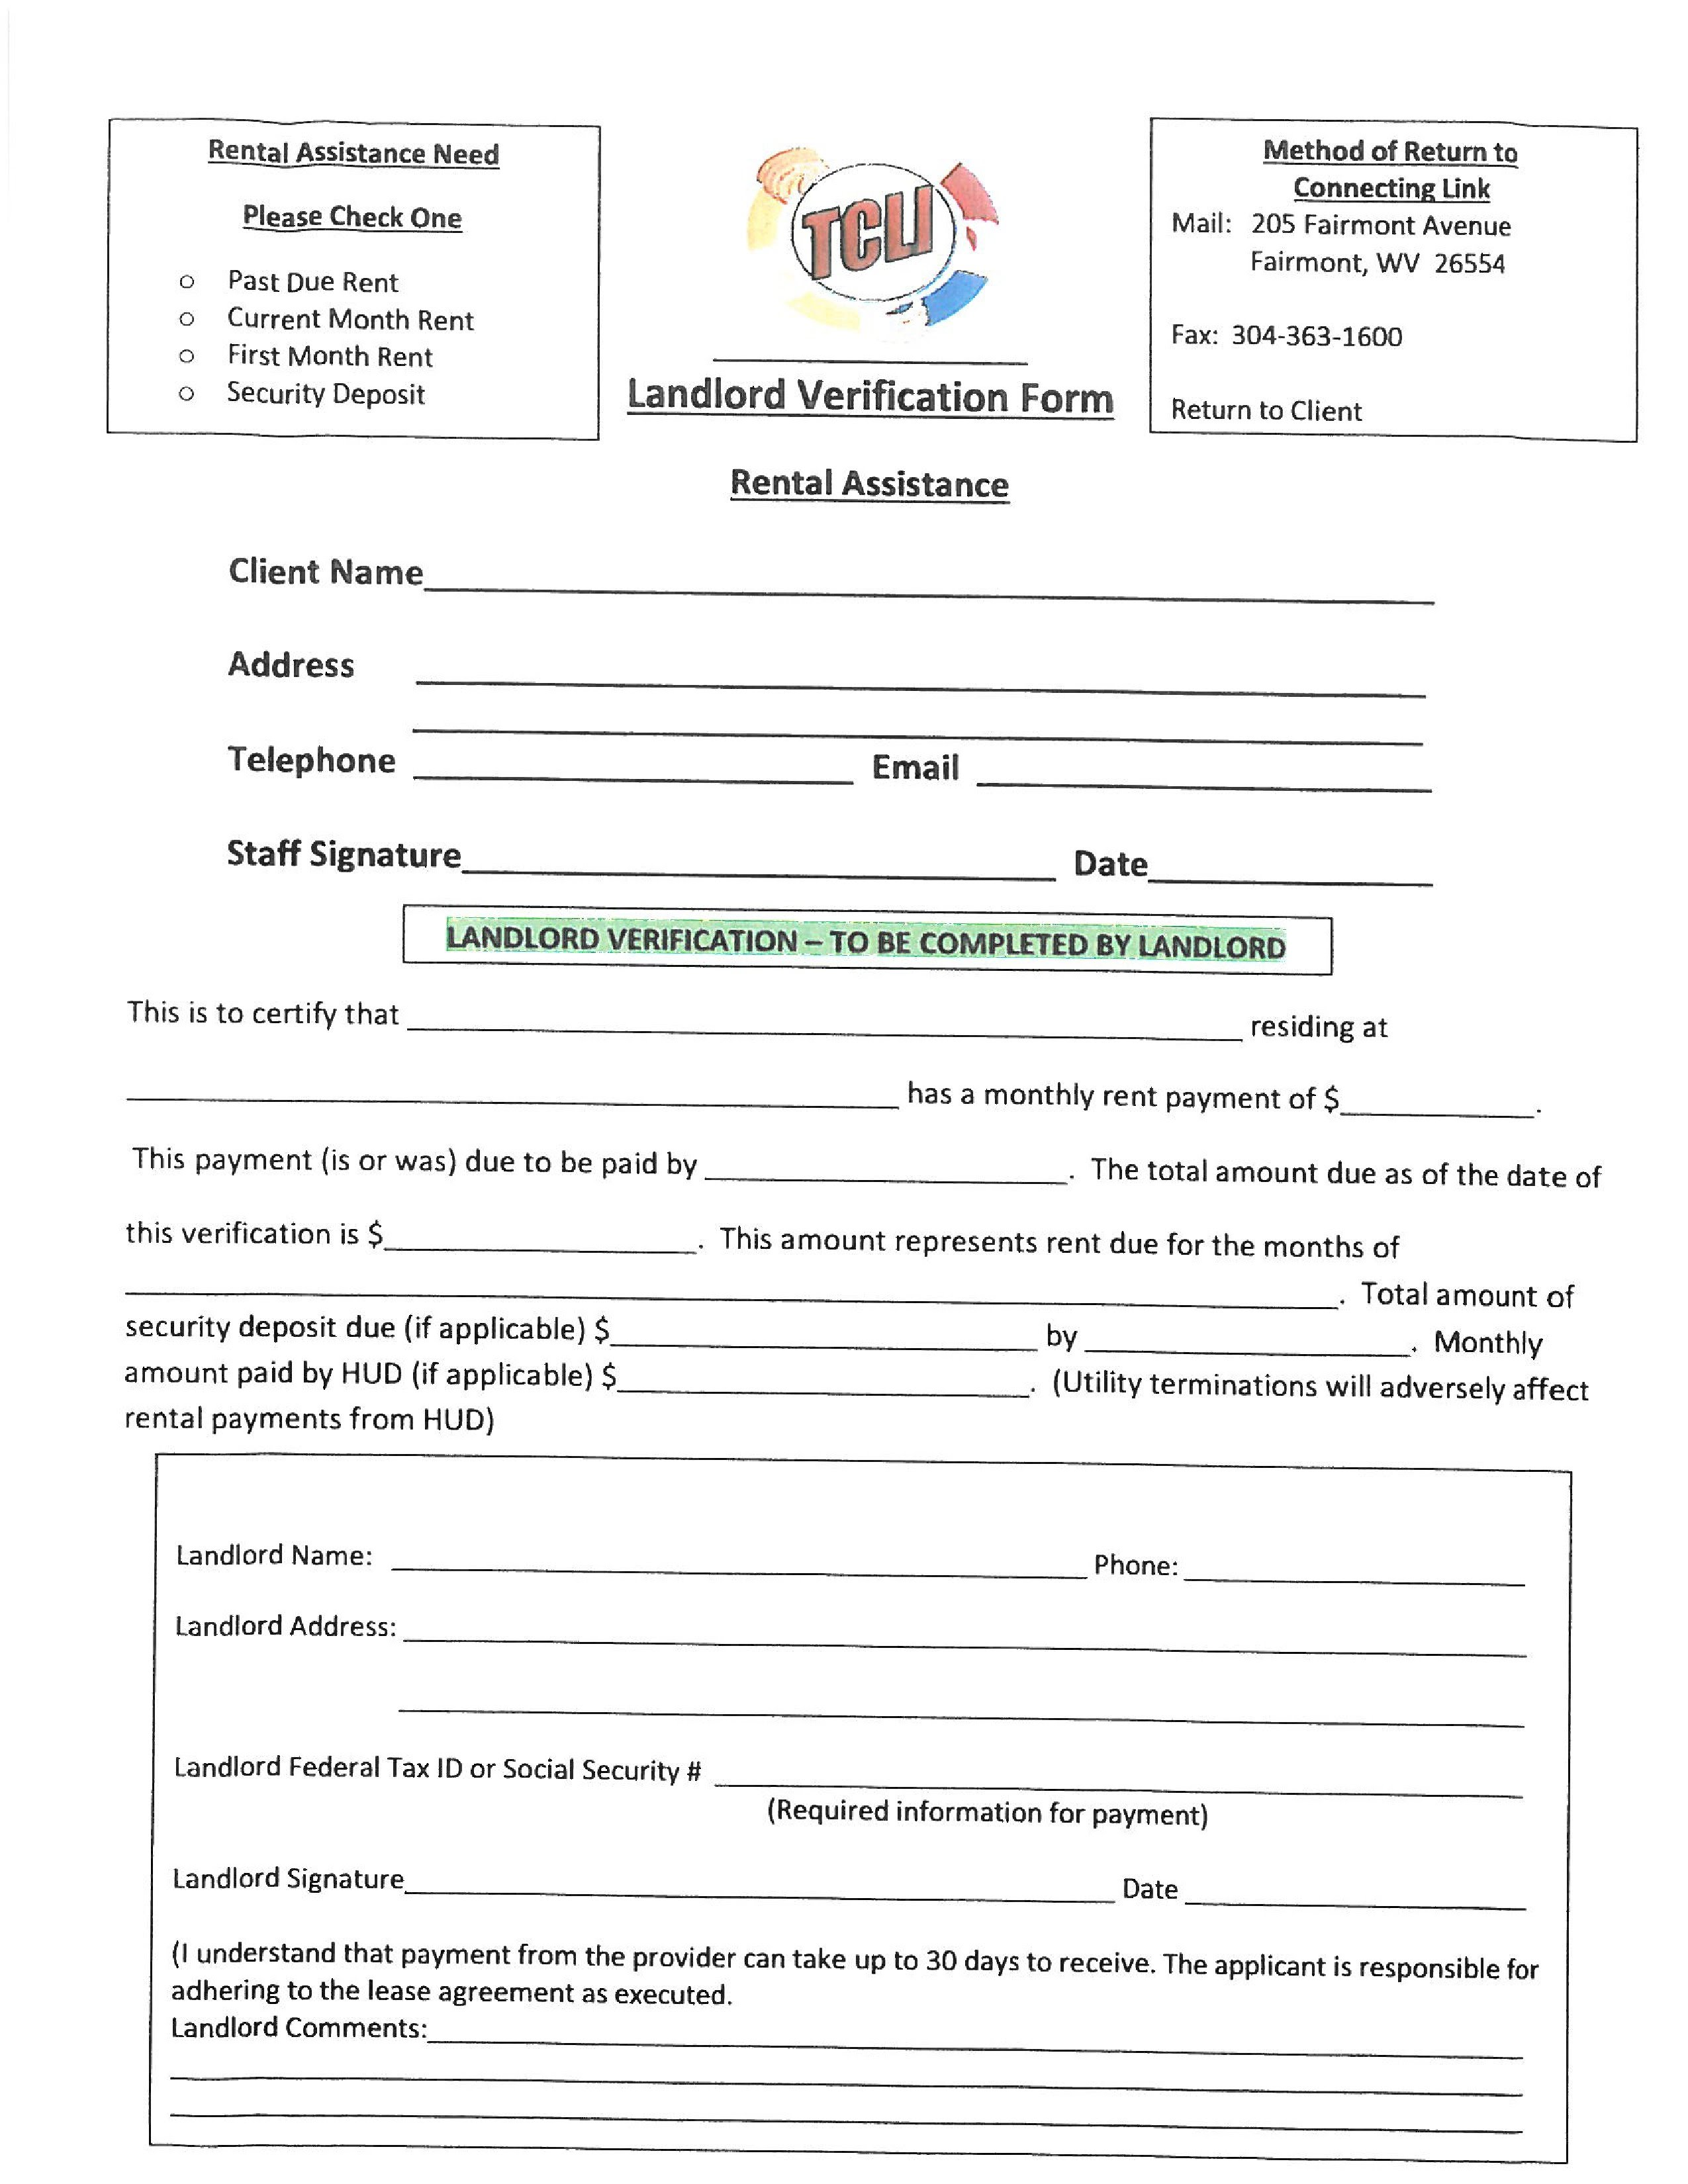 Google Sites  Landlord Verification Form